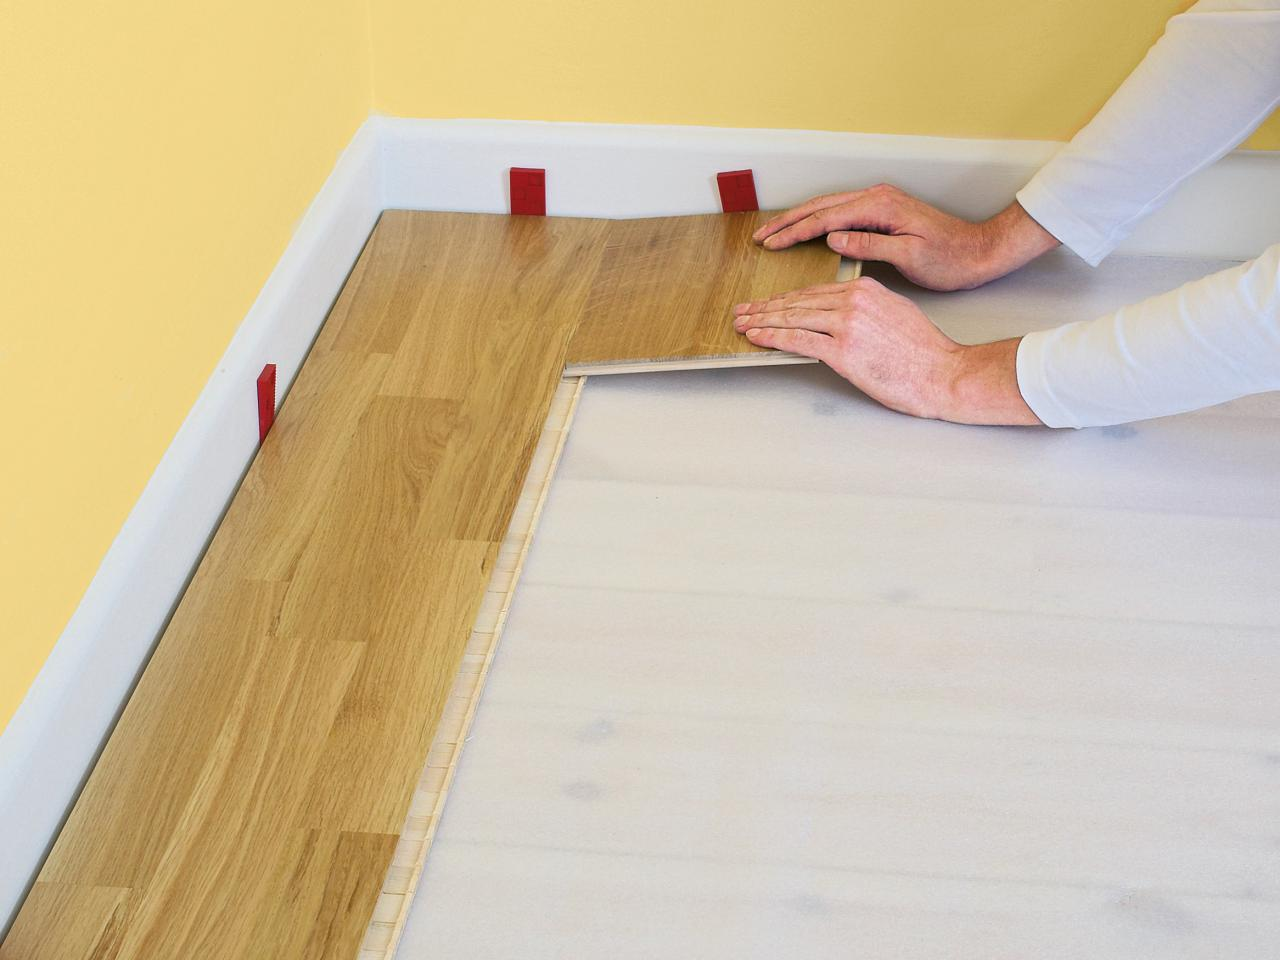 Laying of laminate